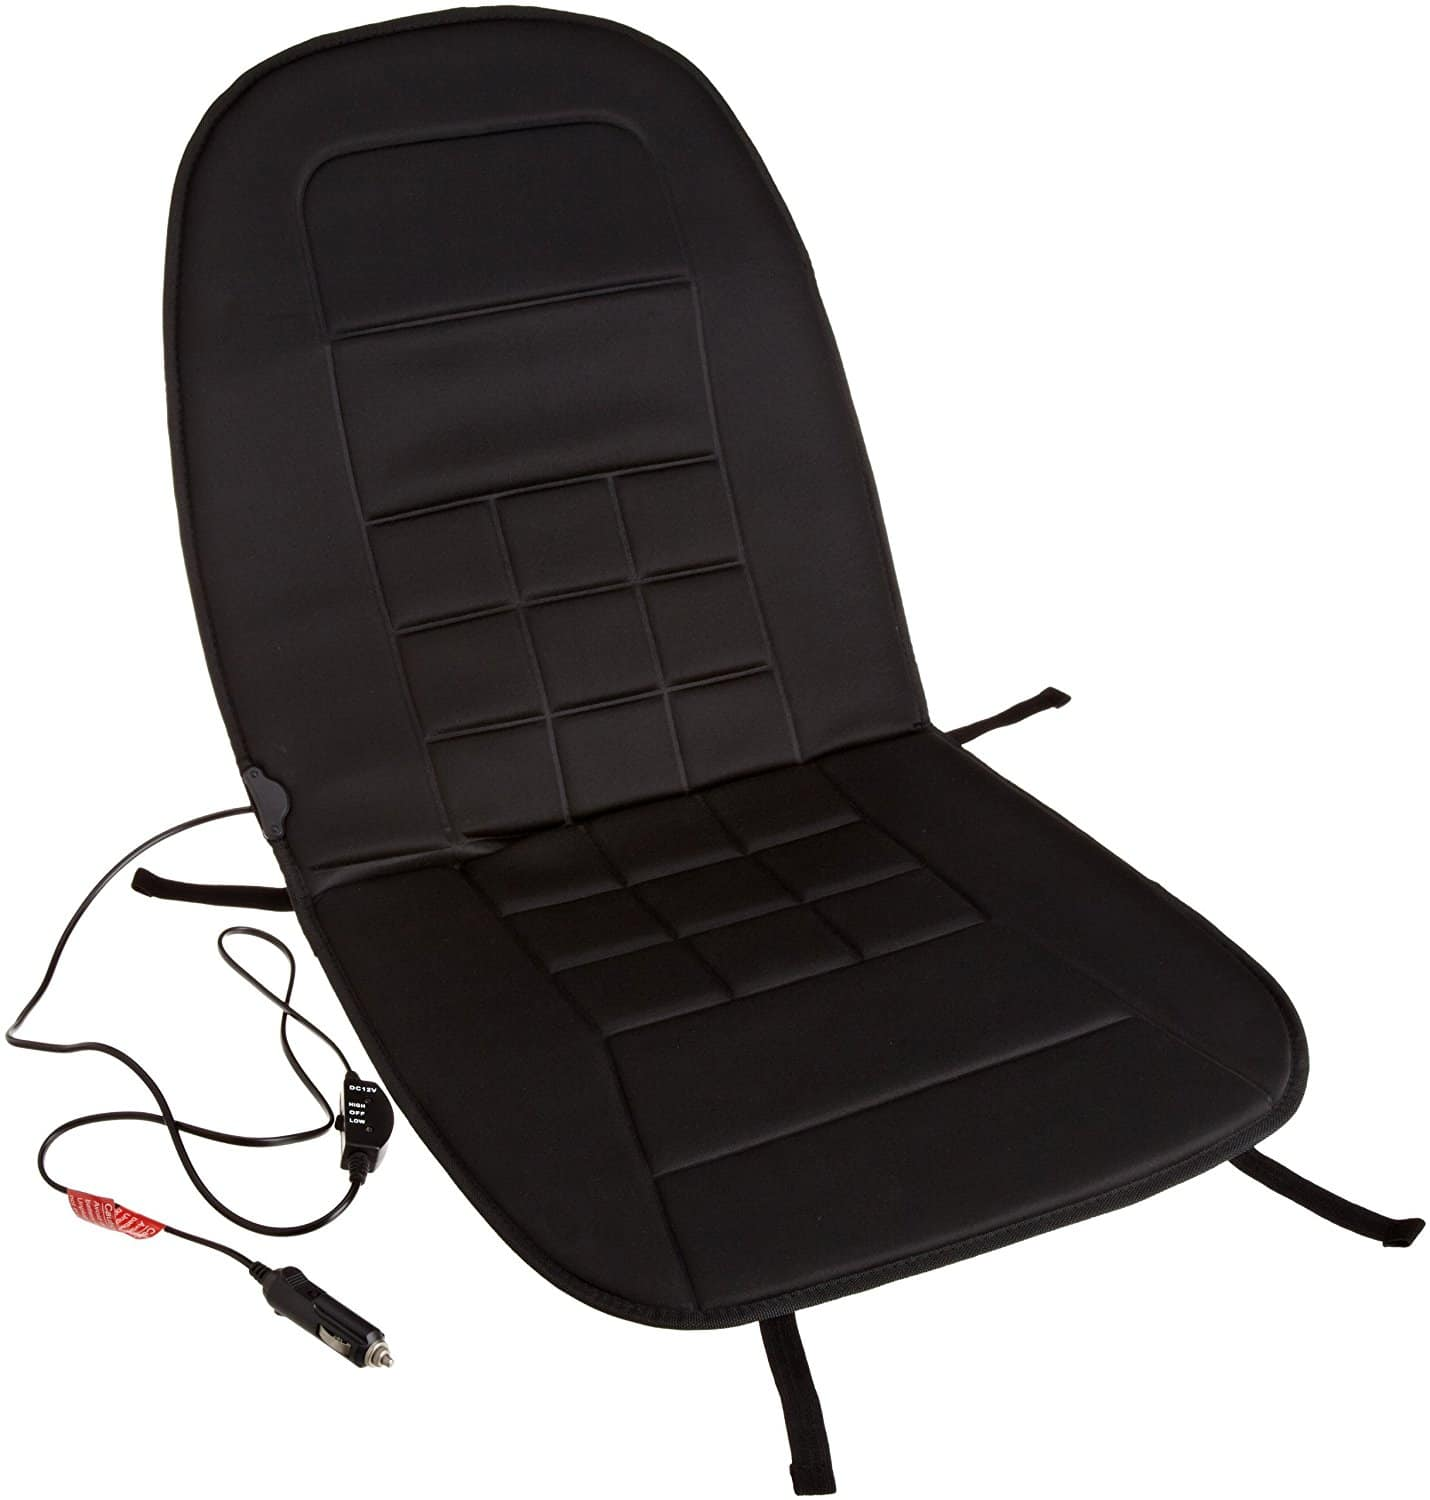 Heated Seat Covers - 3-Way Temperature Controller